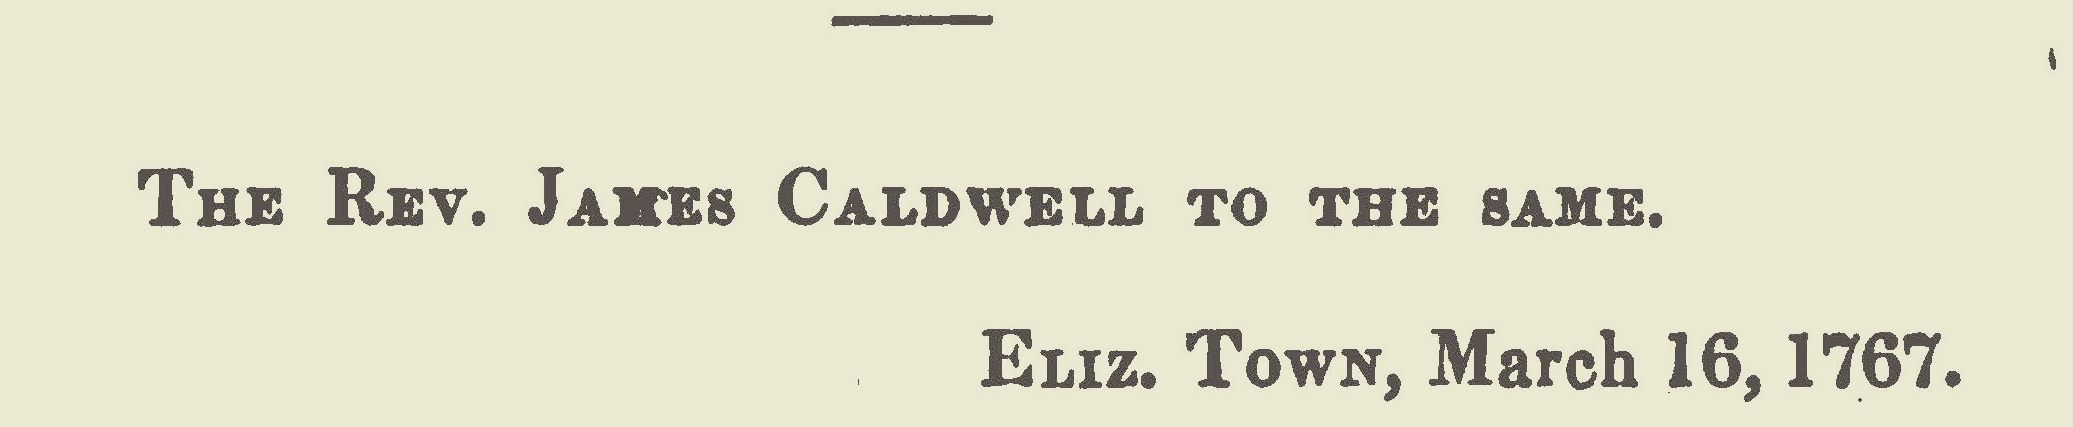 Caldwell, James, March 16, 1767 Letter to Joseph Bellamy Title Page.jpg